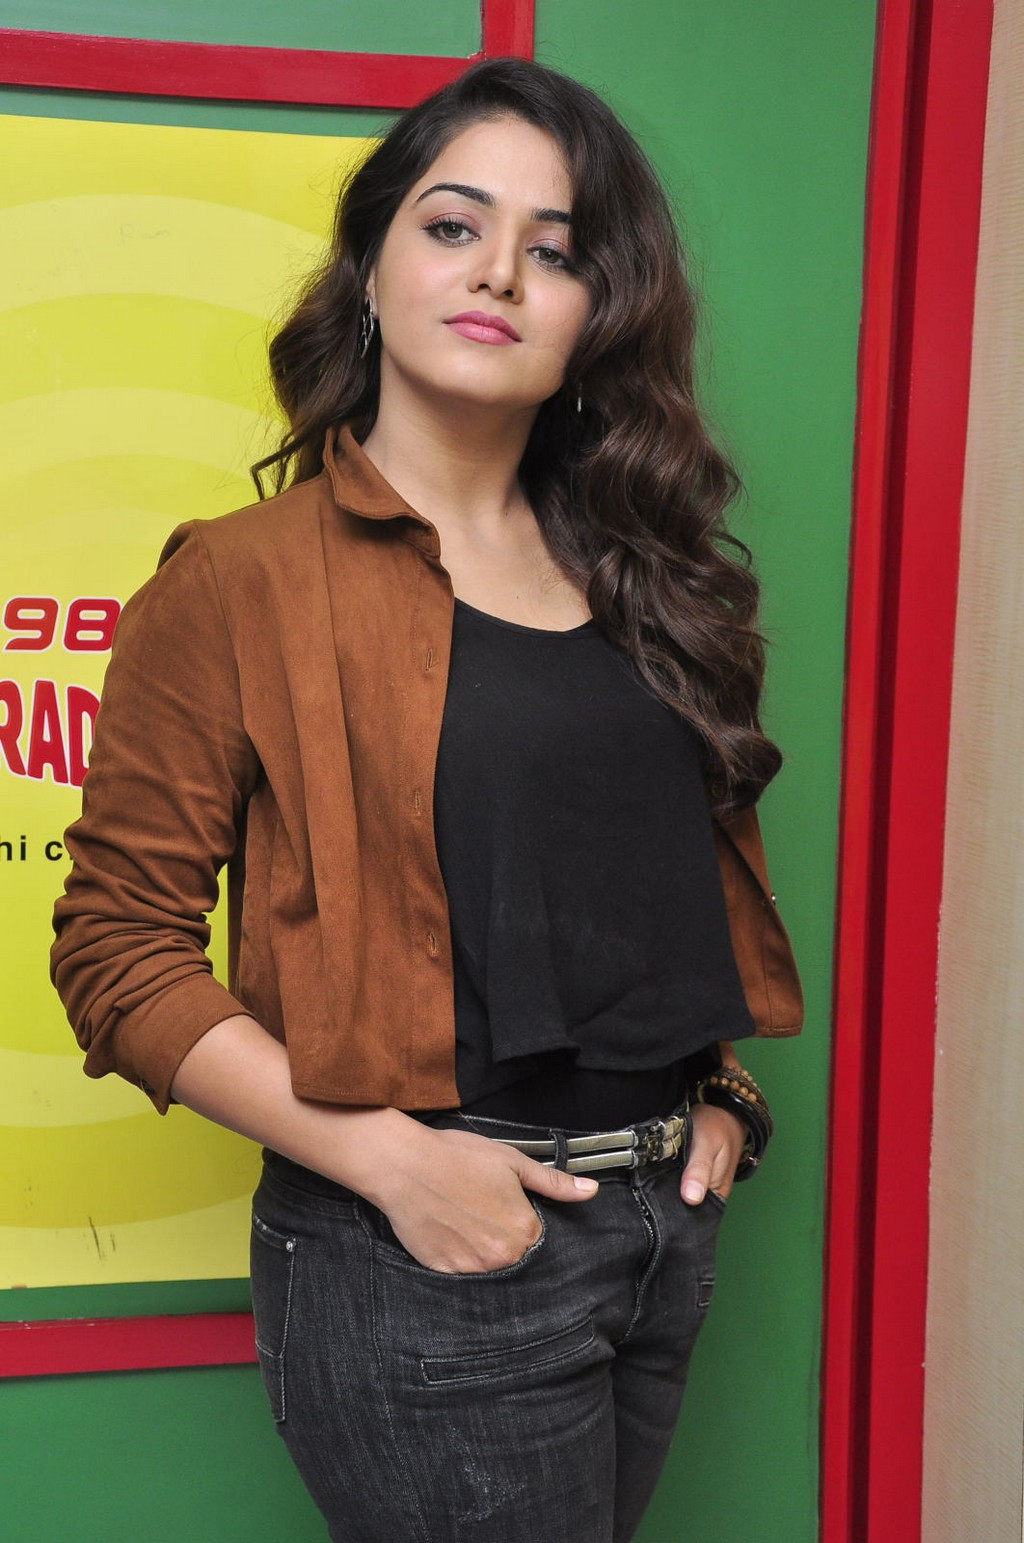 Glamours Tollywood Actress Wamiqa Gabbi Hot Photos In Black Jeans Top